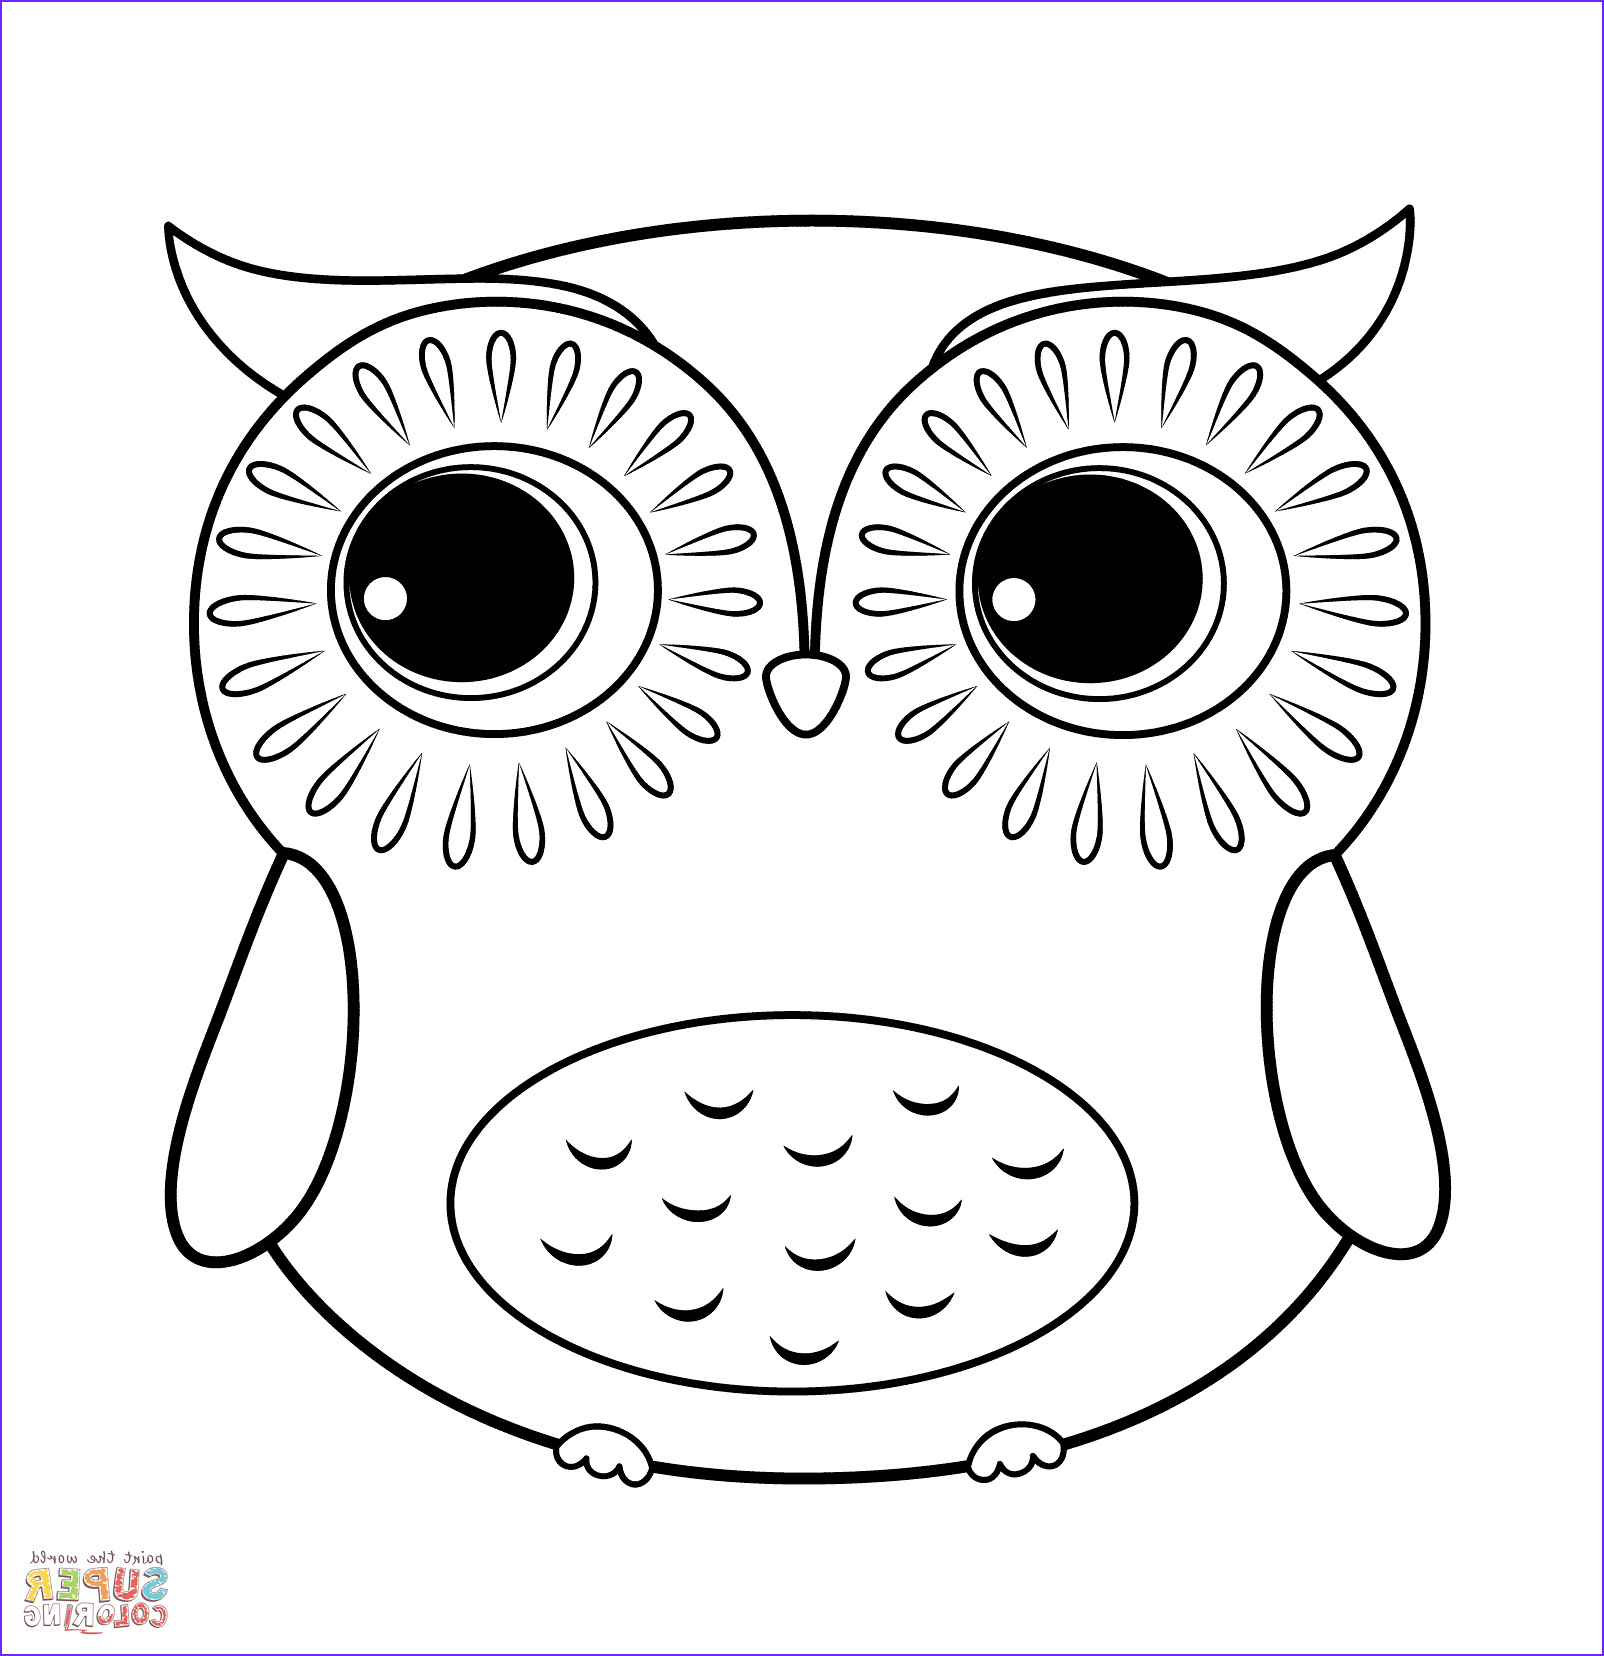 Free Printable Owl Coloring Pages Beautiful Gallery Cartoon Owl Coloring Page